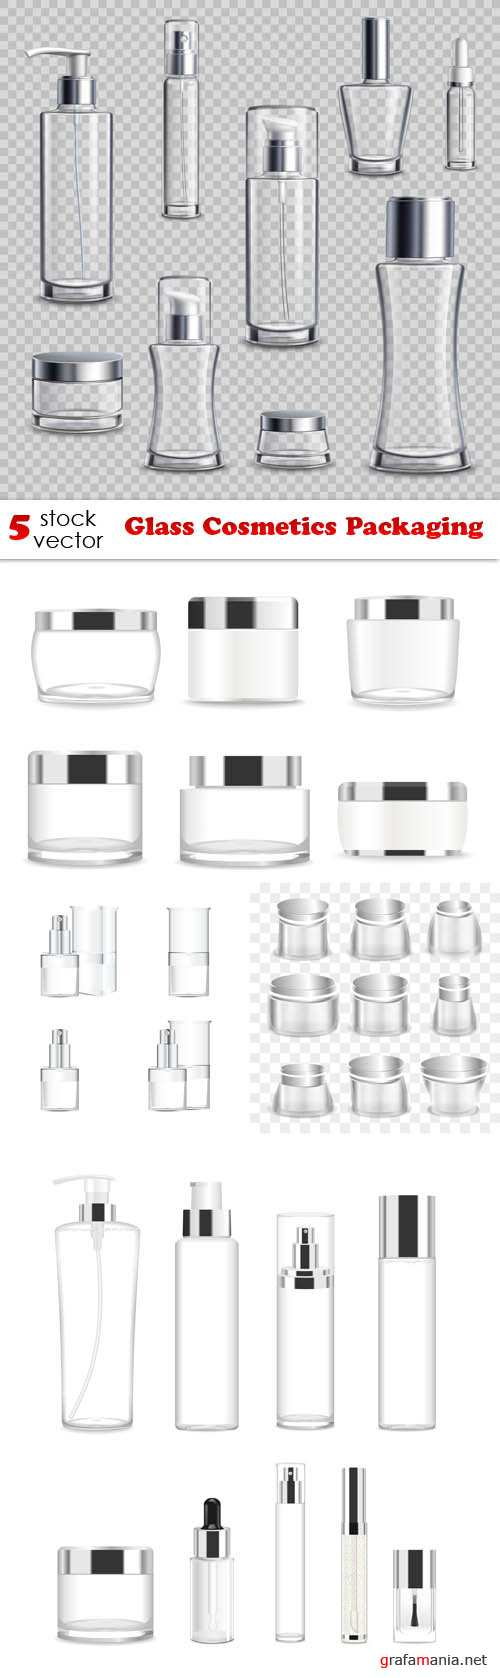 Vectors - Glass Cosmetics Packaging